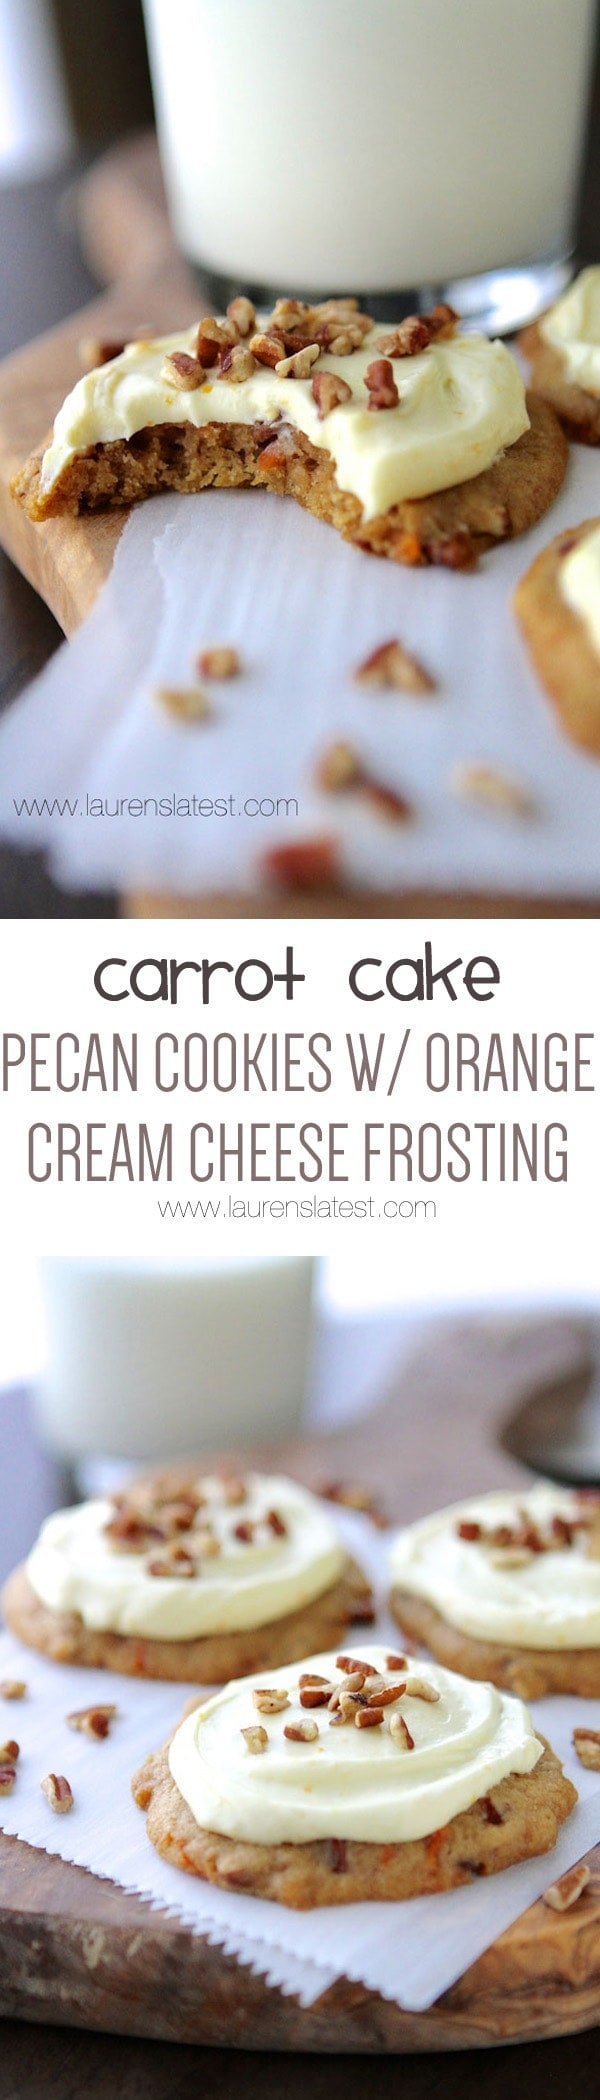 These Carrot Cake Pecan Cookies are cake-like and soft and completely irresistible when they're topped with Orange Cream Cheese frosting!